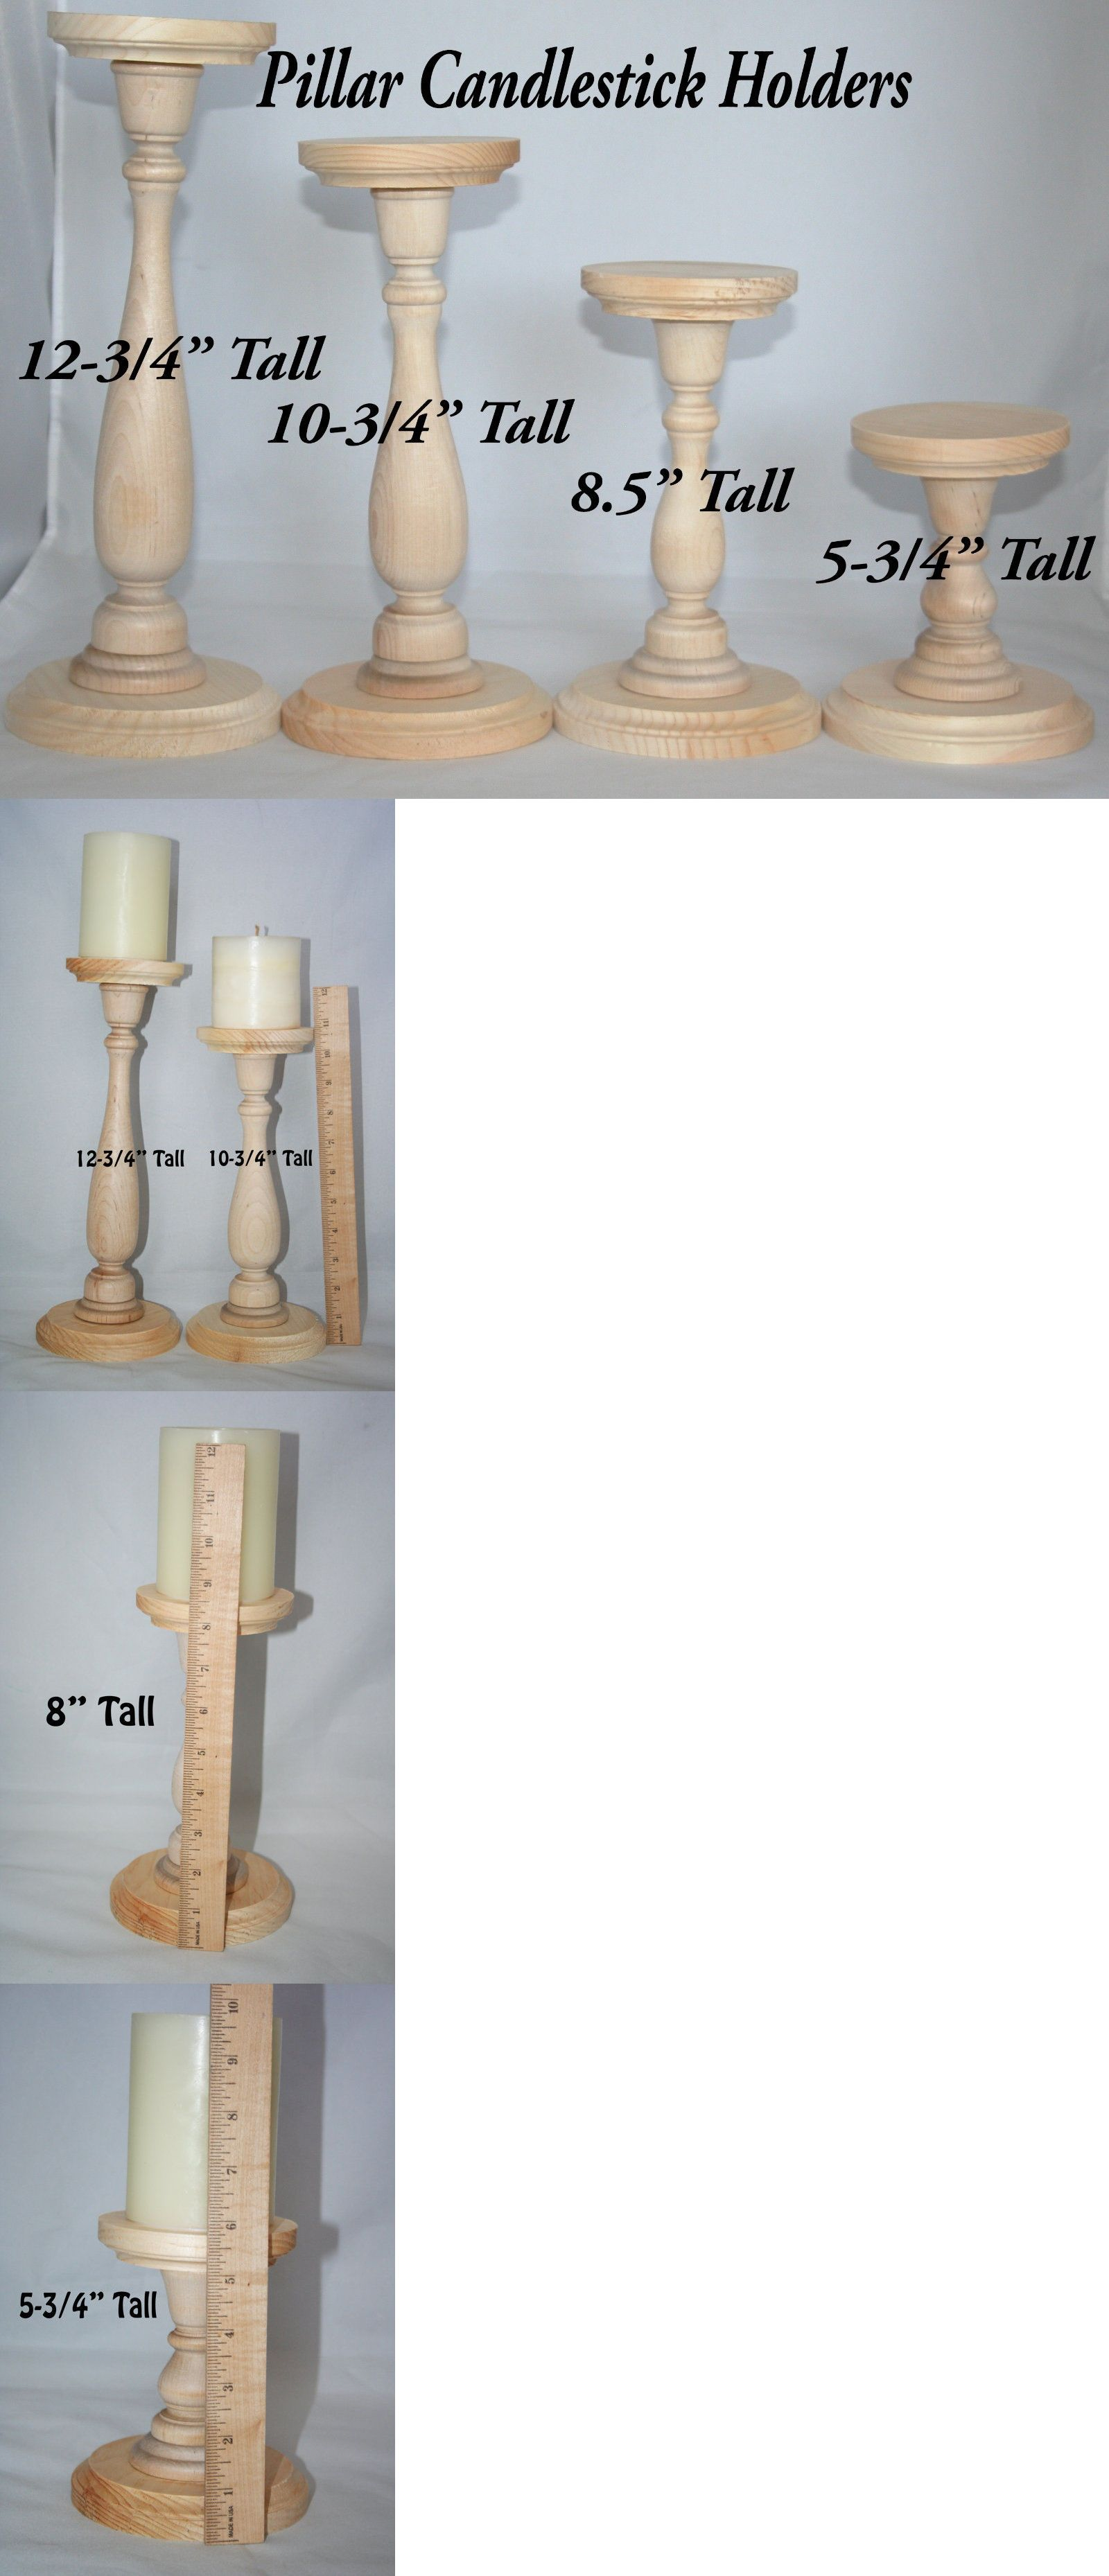 Candle Holders And Accessories 16102 Unfinished Wood Pillar Candlestick Holders Tall Candlestick Cheap Candle Holders Candle Sticks Wedding Tall Candlesticks